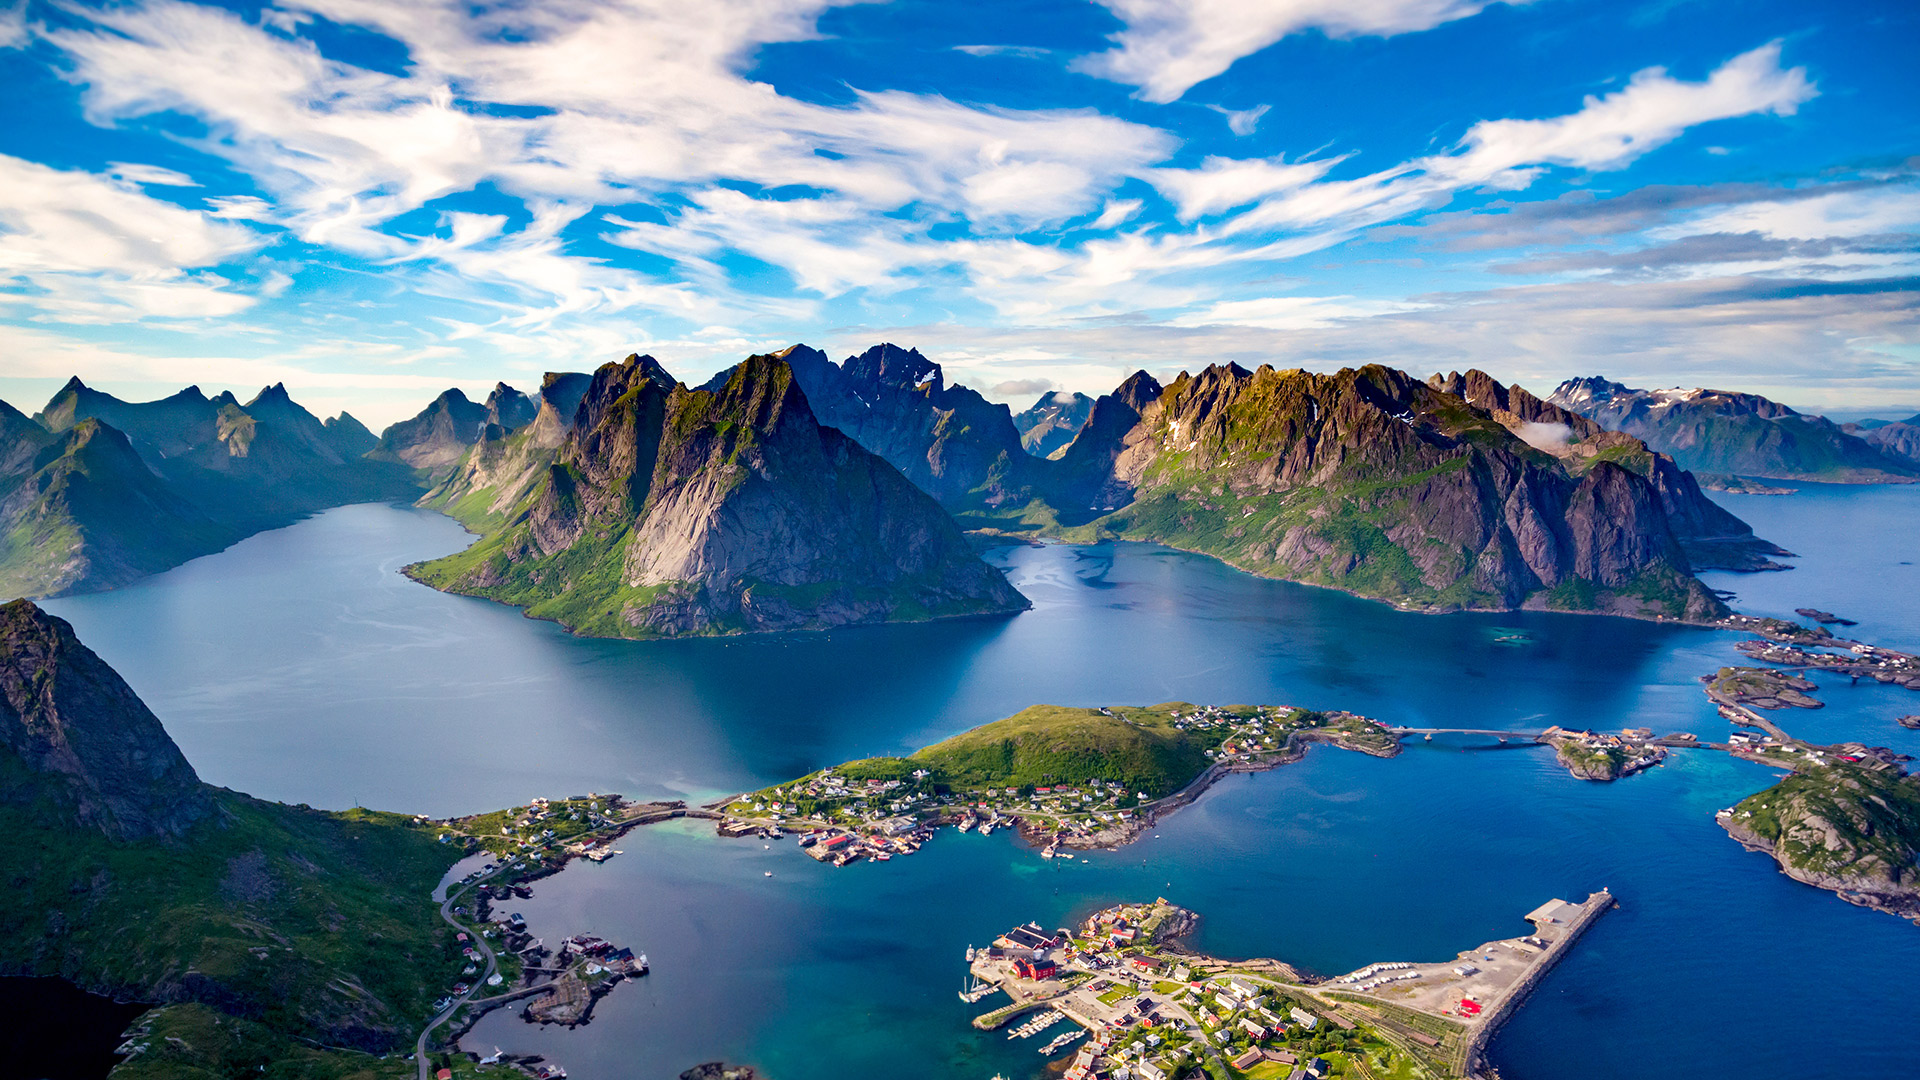 Lofoten islands mountain view of Nordland, Norway